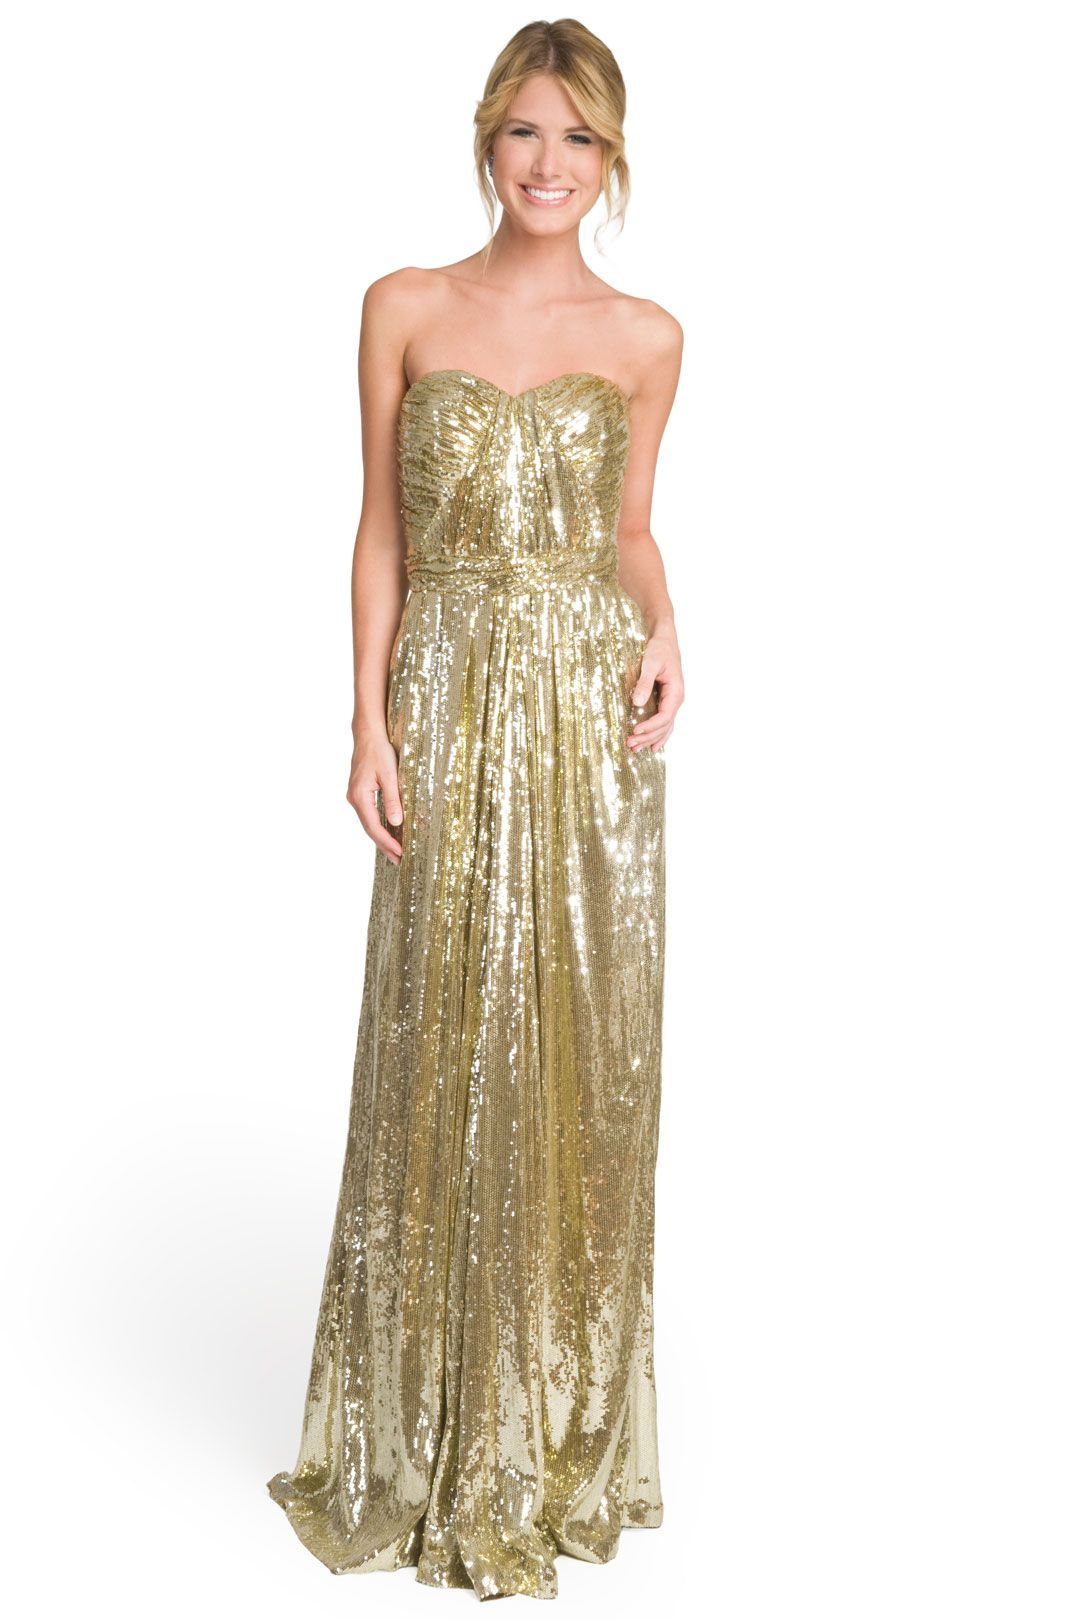 Screen Siren Gown | Sirens, Gowns and Badgley mischka